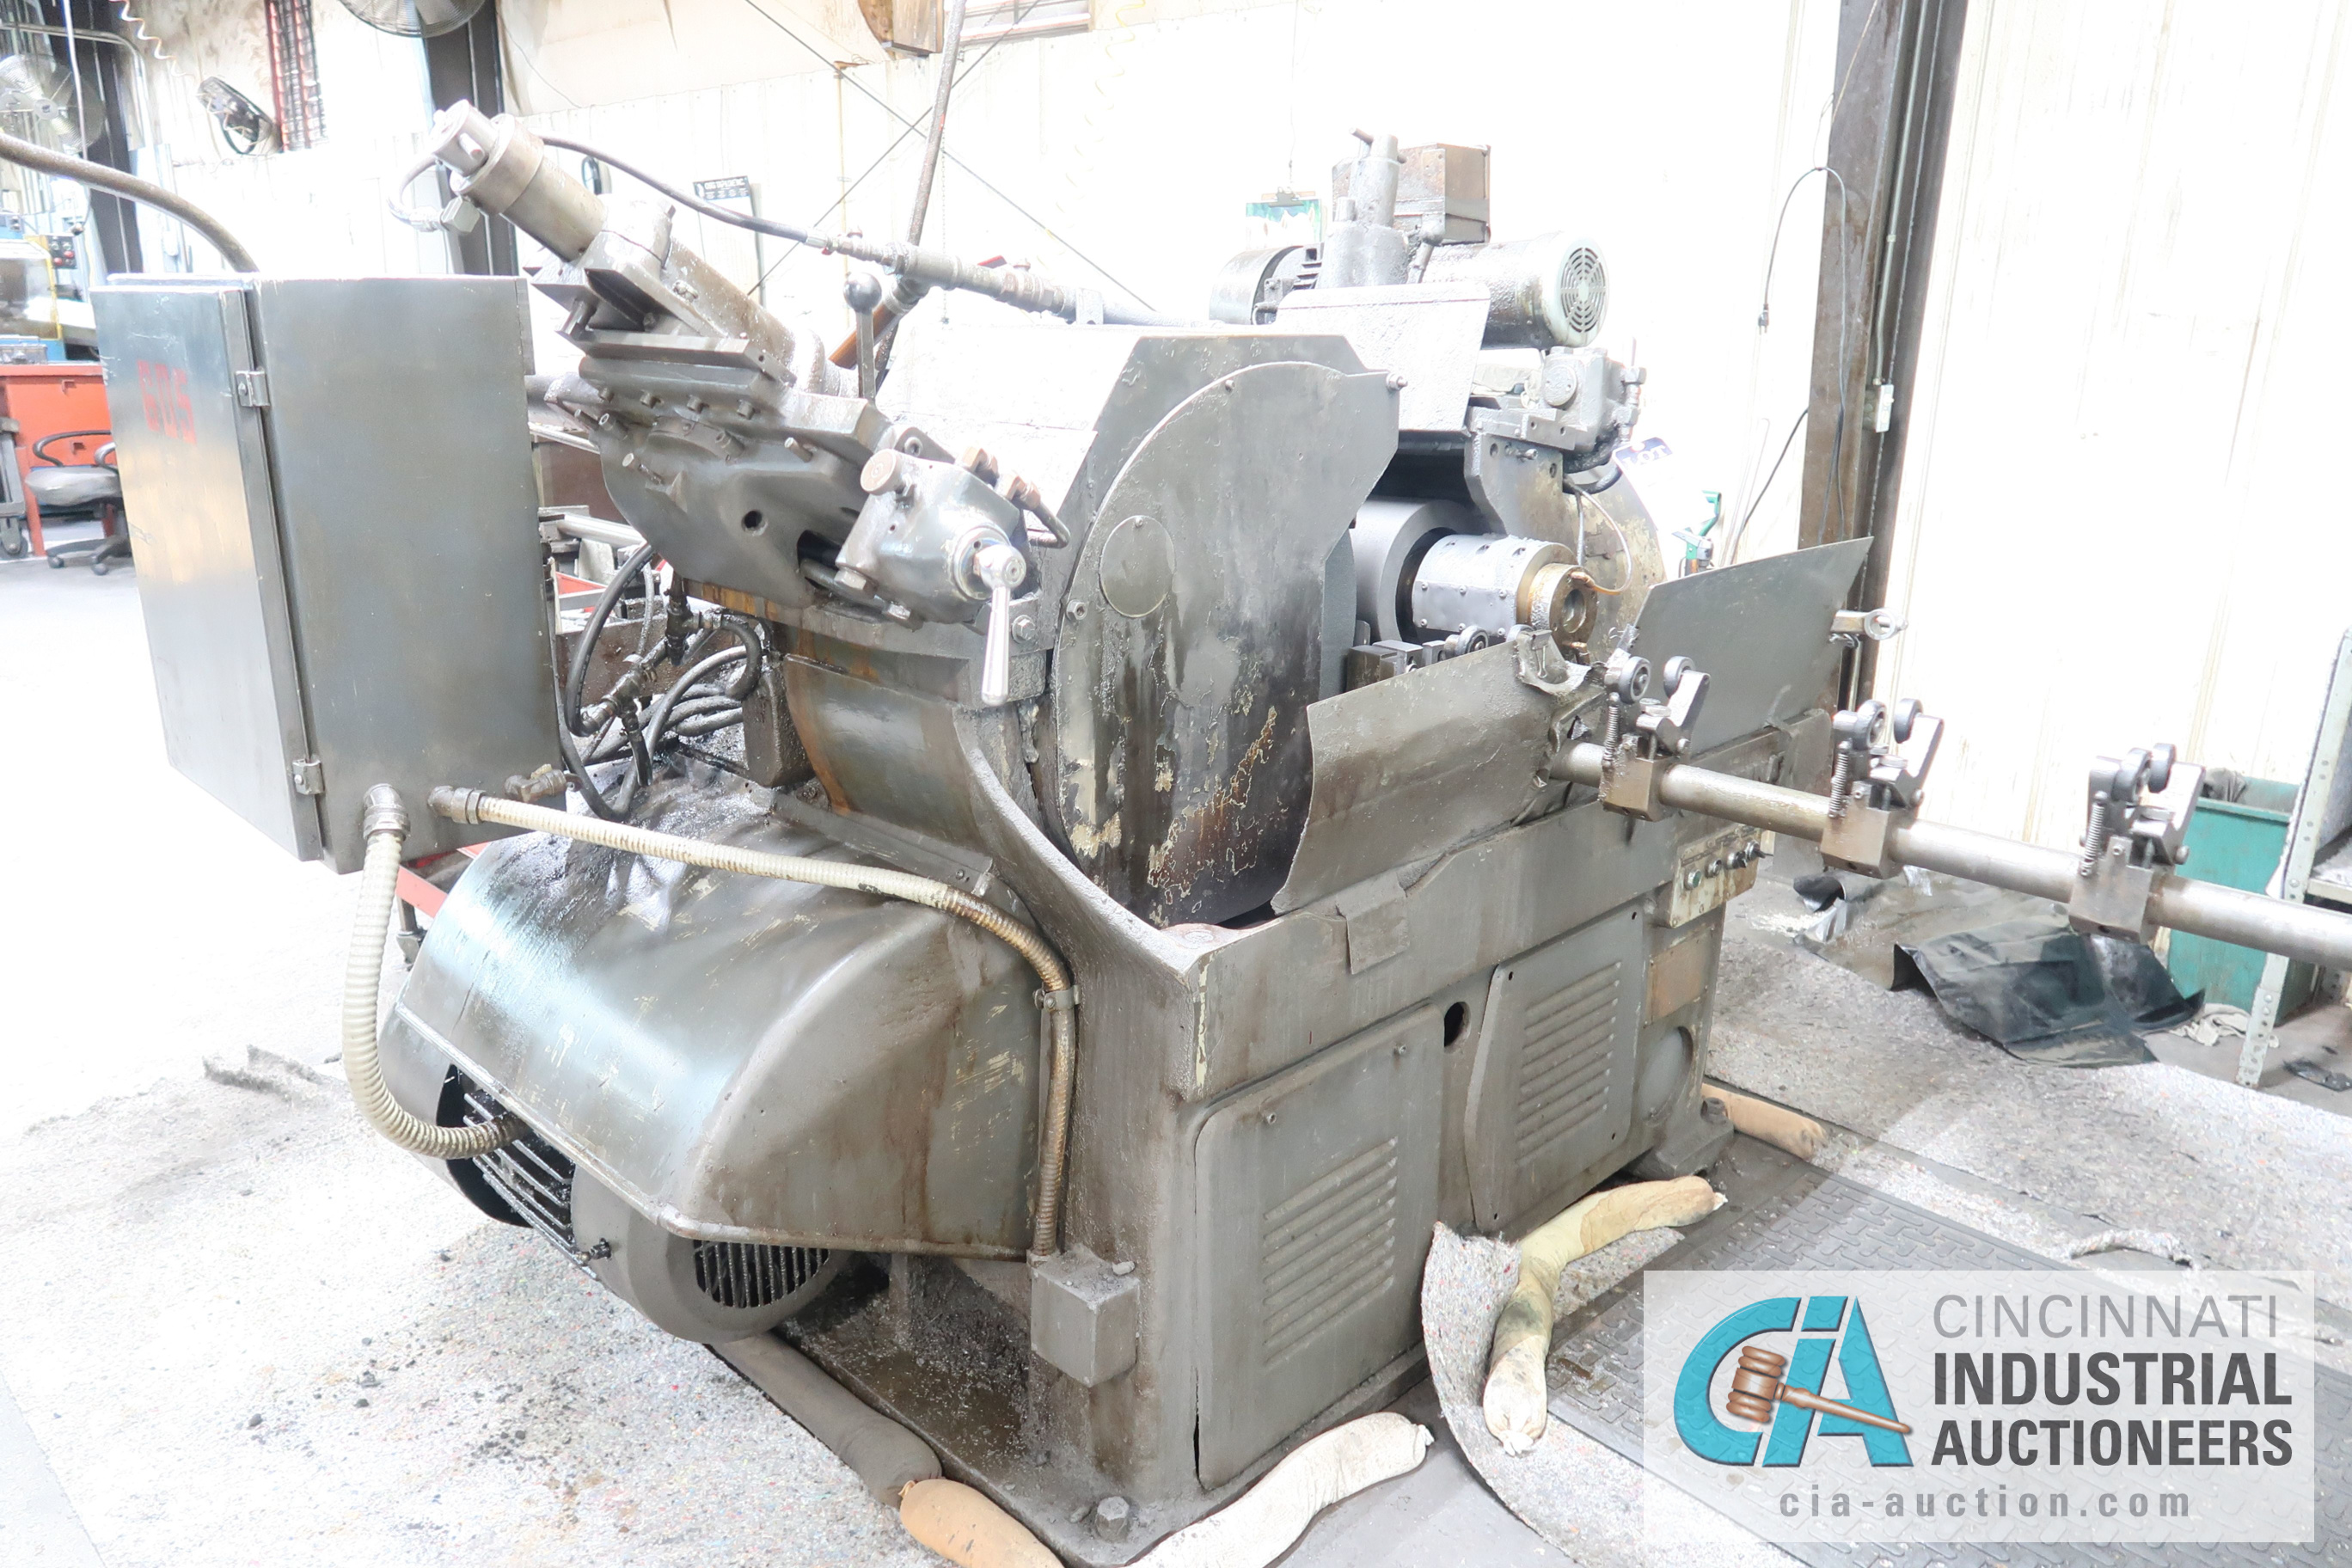 CINCINNATI MODEL 2 CENTERLESS GRINDER; S/N 2M2H1L-2160 WITH INFEED AND OUTFEED CONVEYORS - Image 2 of 6